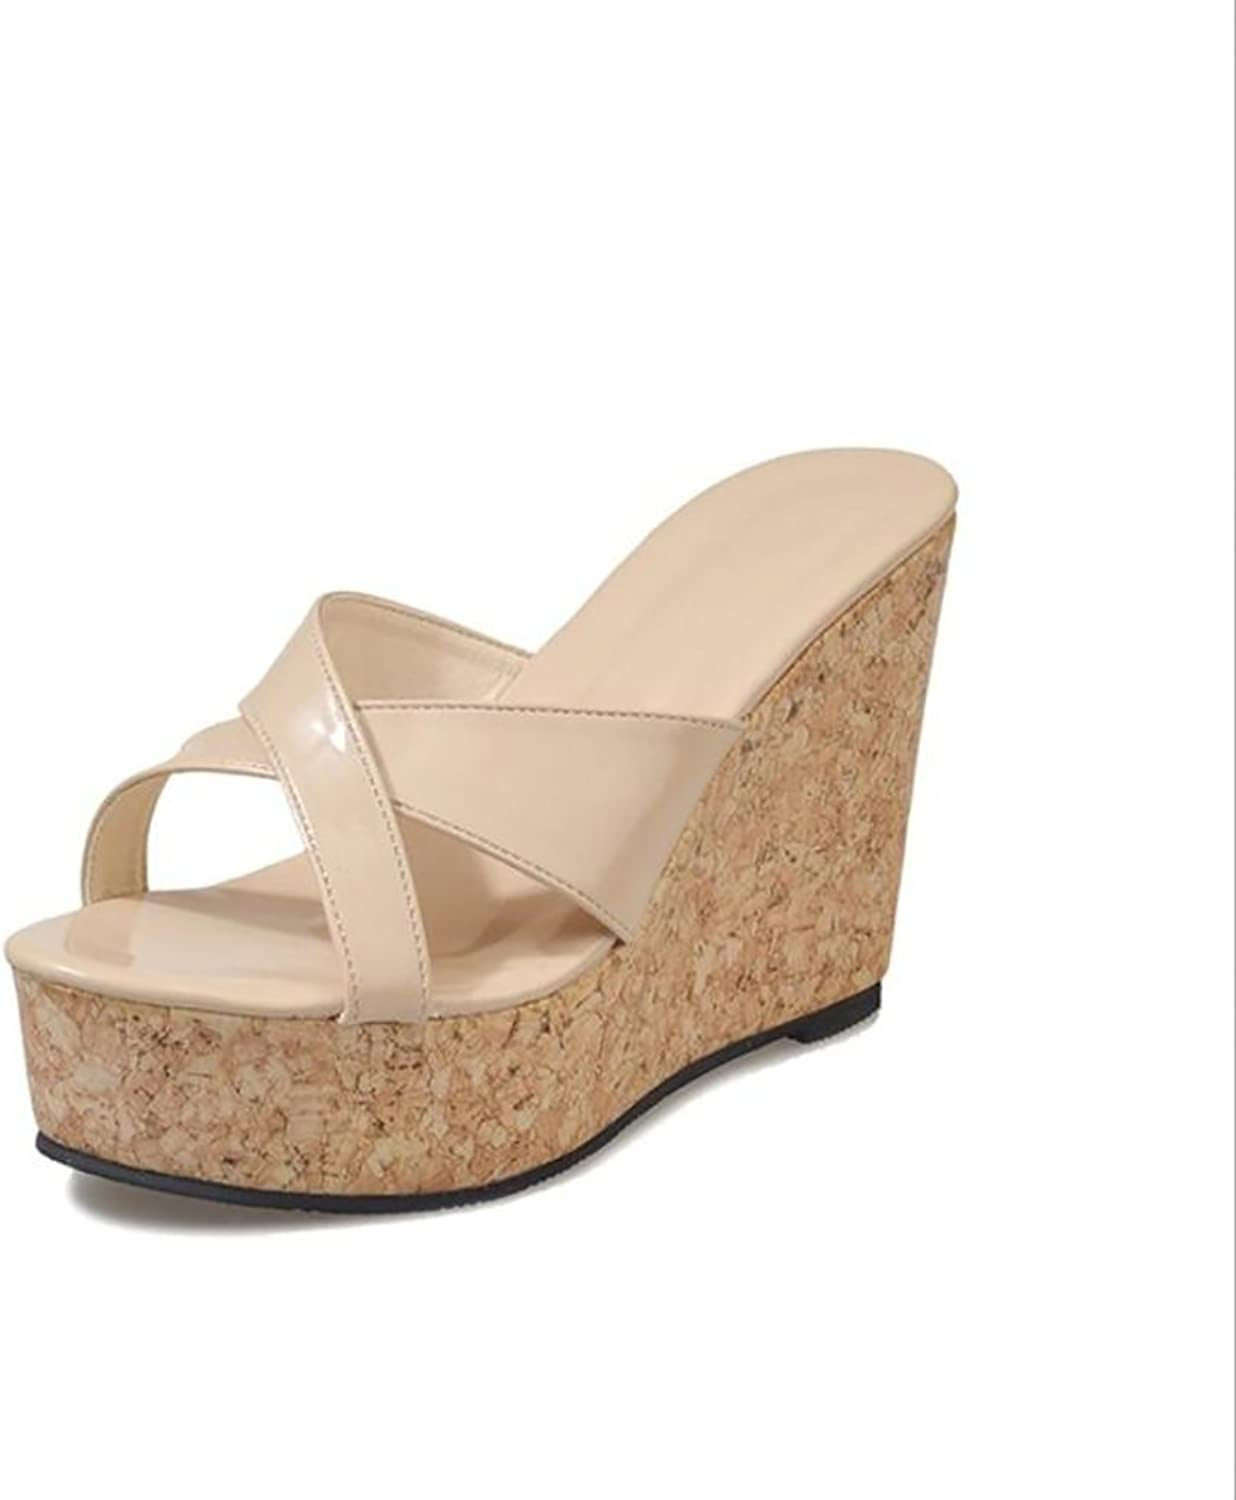 Summer Women's Comfy Slippers High Heels Wedge Platform Flip Flops Sandals,Beige,36